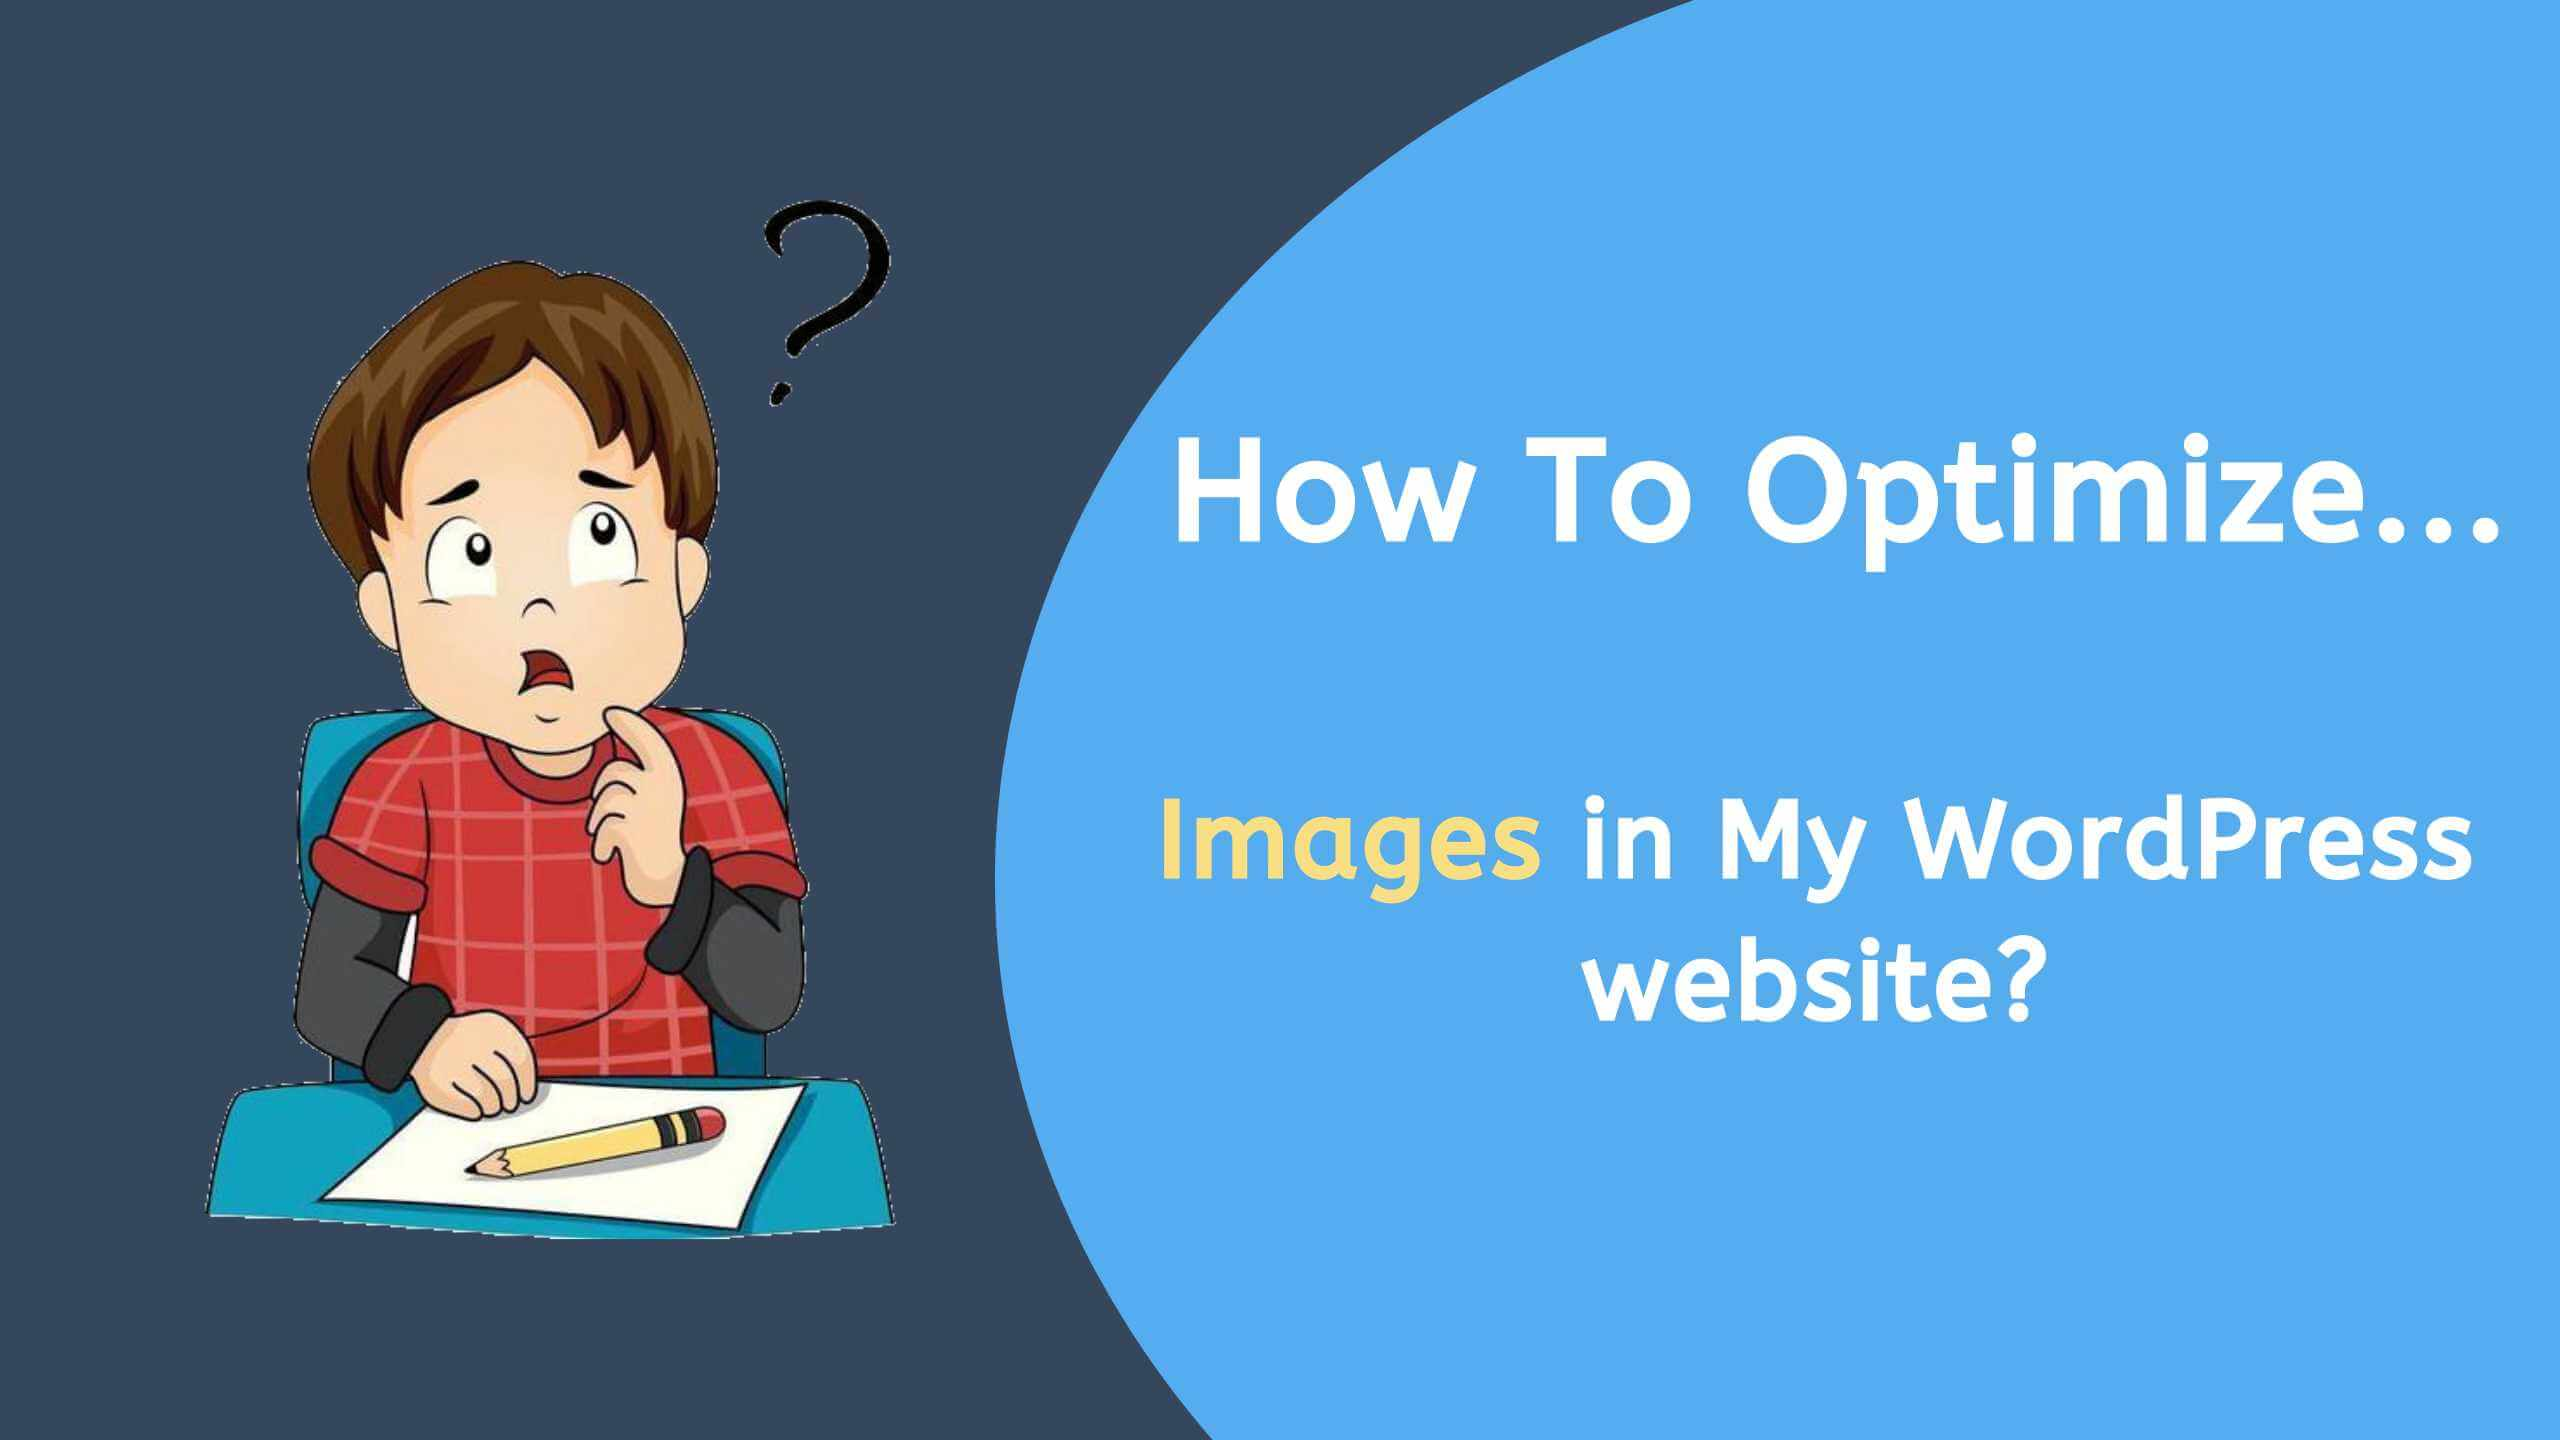 but, how to optimize images in wordpress?